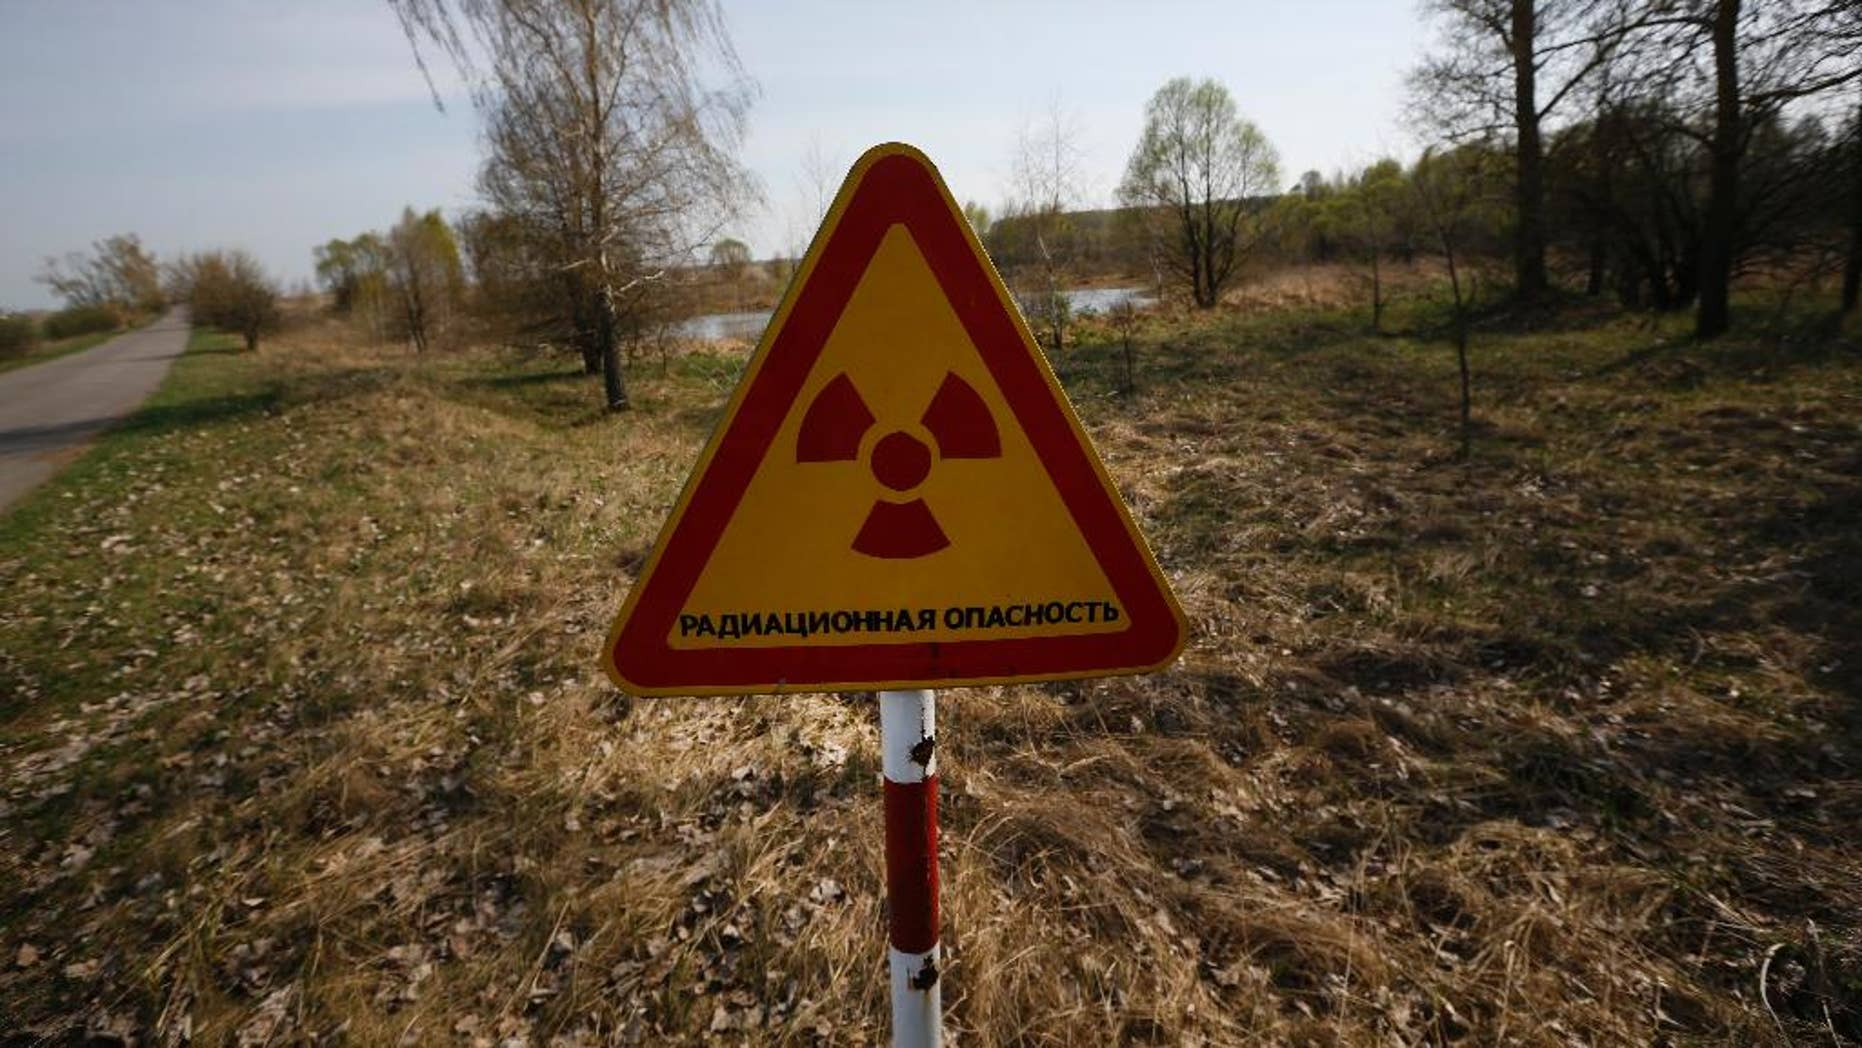 FILE - In this Monday, April 11, 2016, file photo, a radiation warning sign stands near a checkpoint in an exclusion zone around the Chernobyl nuclear reactor, southeast of Minsk, Belarus. A Belarus court on Thursday Dec. 22, 2016 ruled against an Associated Press correspondent in a lawsuit by a dairy company that claimed an AP article about farming on fallout-damaged land hurt its reputation. (AP Photo/Sergei Grits, File)